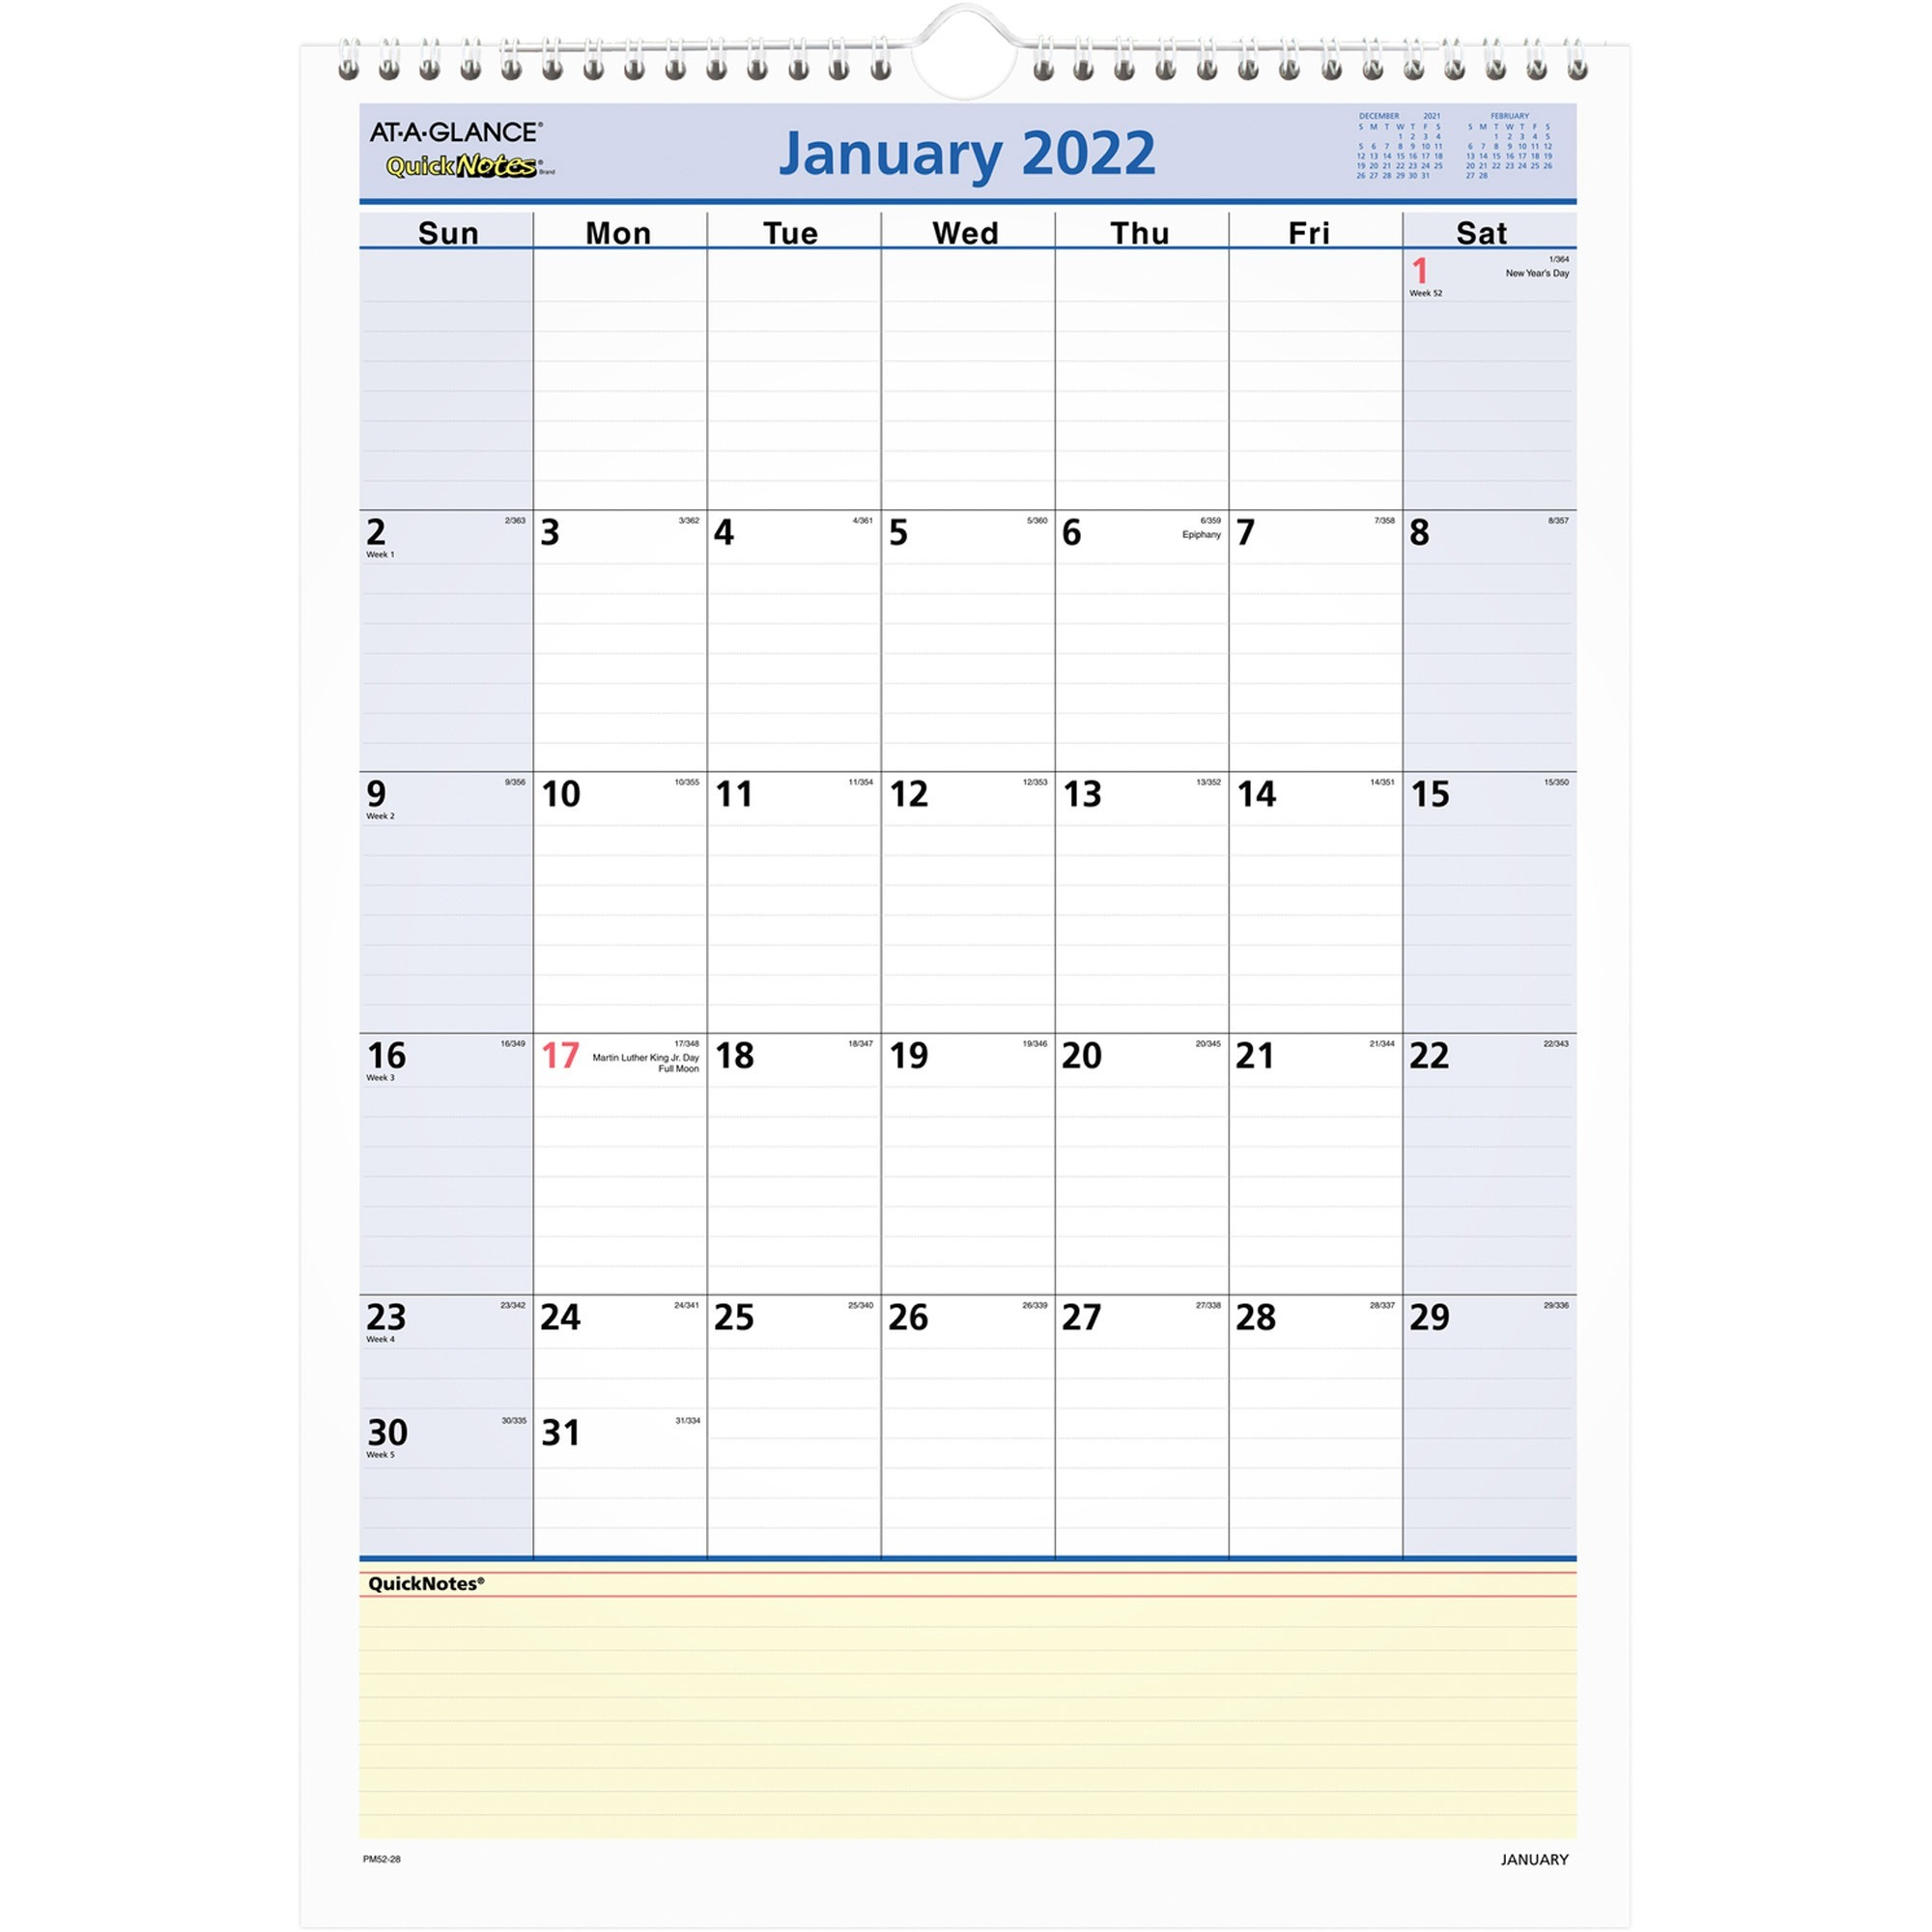 a5819d3ae9a At-A-Glance QuickNotes Monthly Wall Calendar - Yes - Monthly - 1 ...